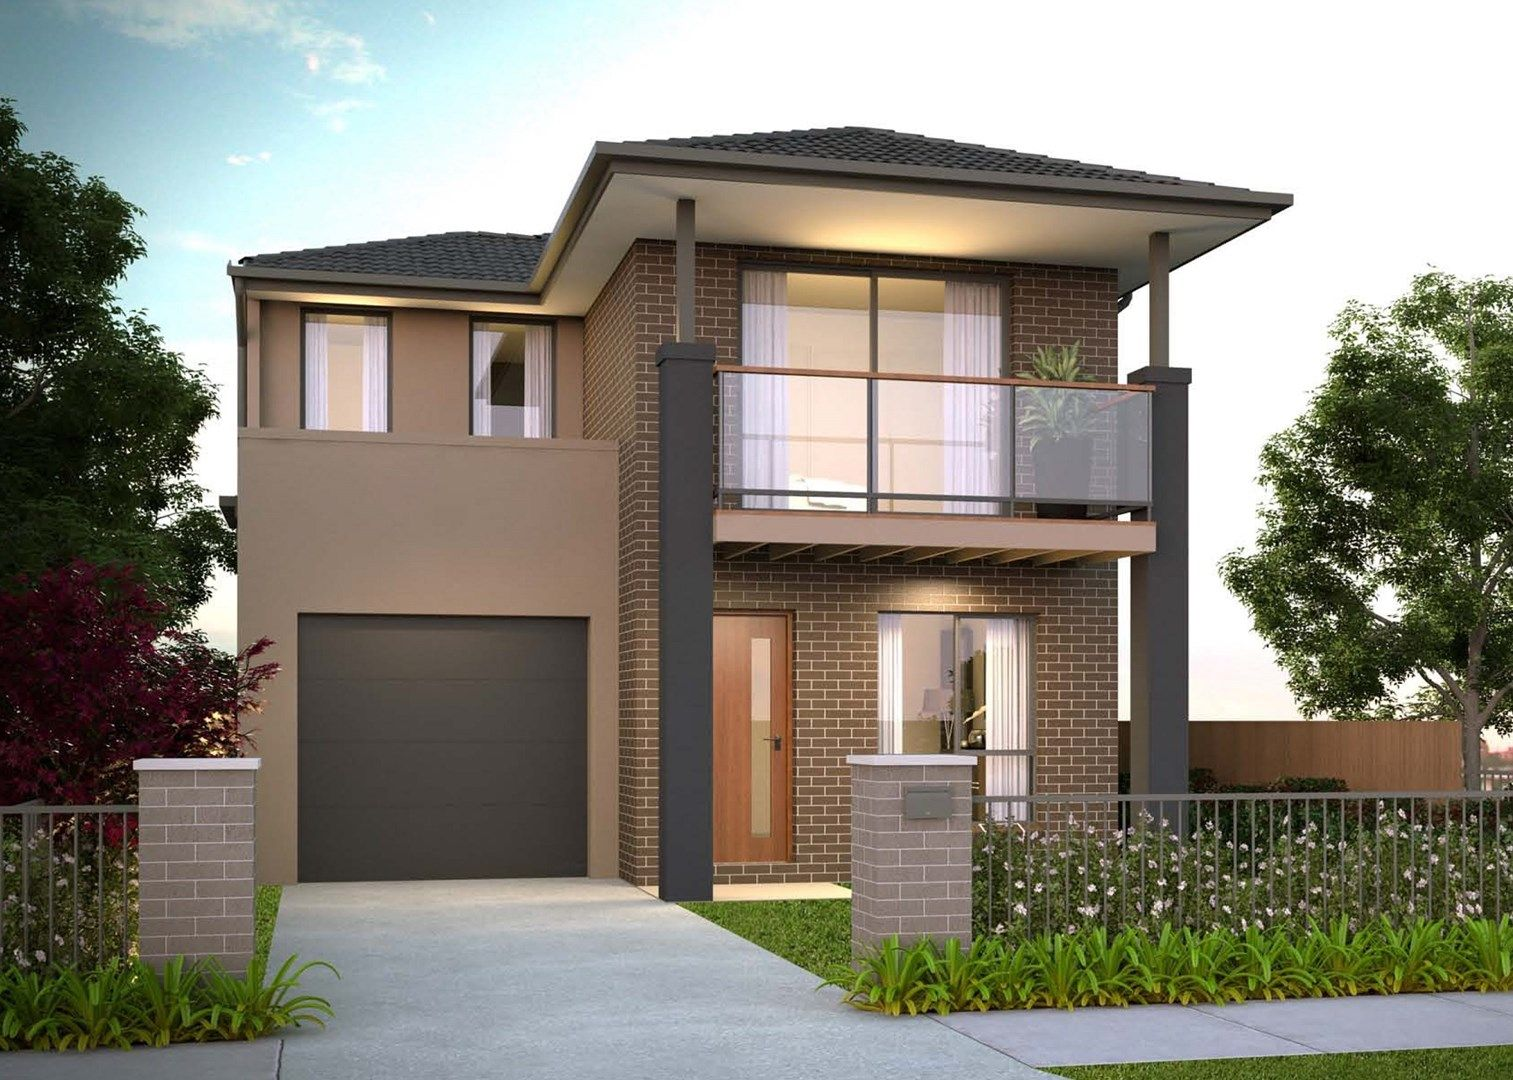 Lot 5205 Birch Street, Bonnyrigg NSW 2177, Image 0